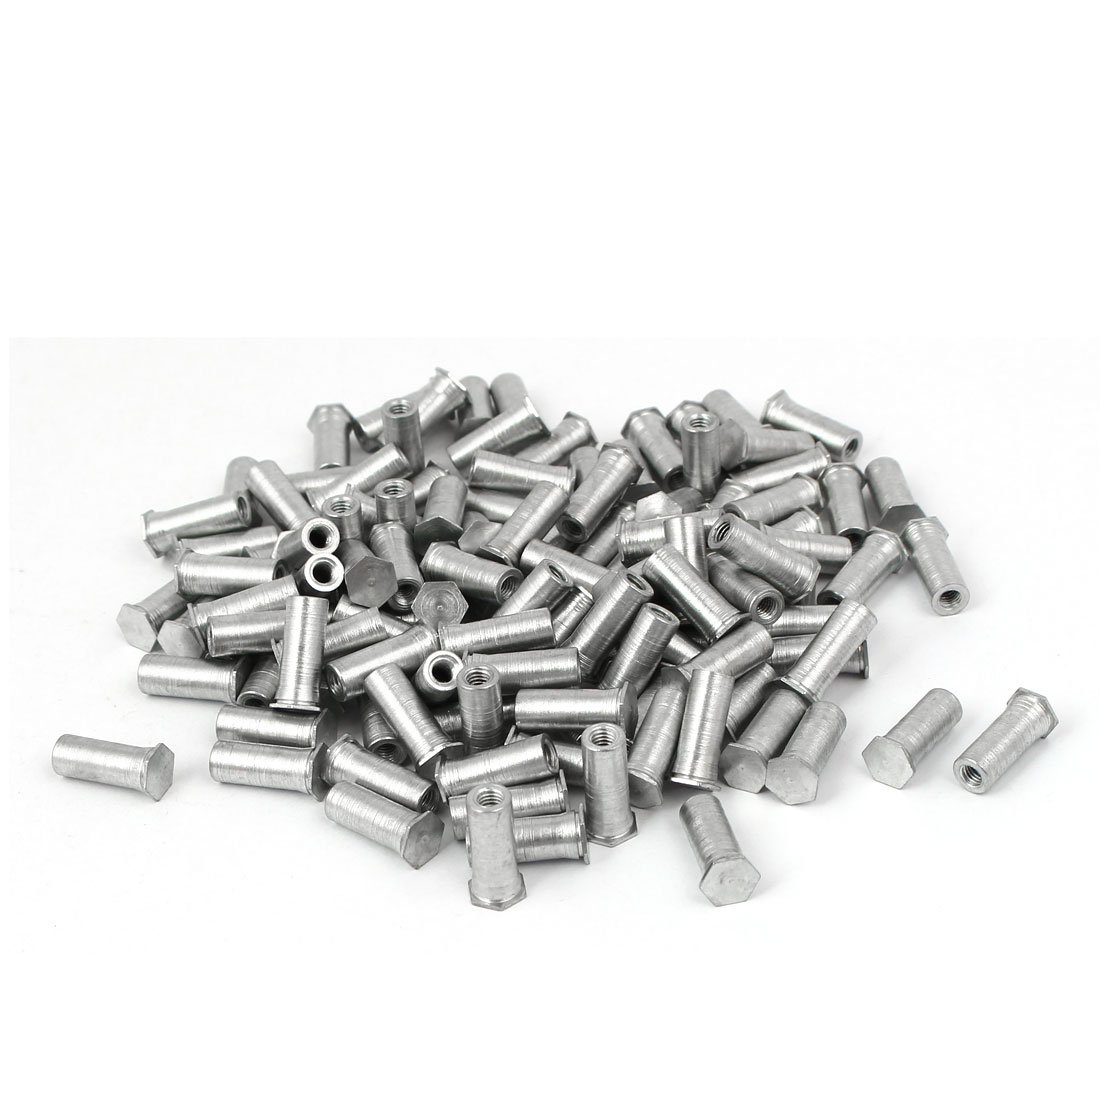 Carbon Steel Zinc Plated Hex Head Full Thread Self Clinching Standoff Silver Tone M3x13mm 200pcs